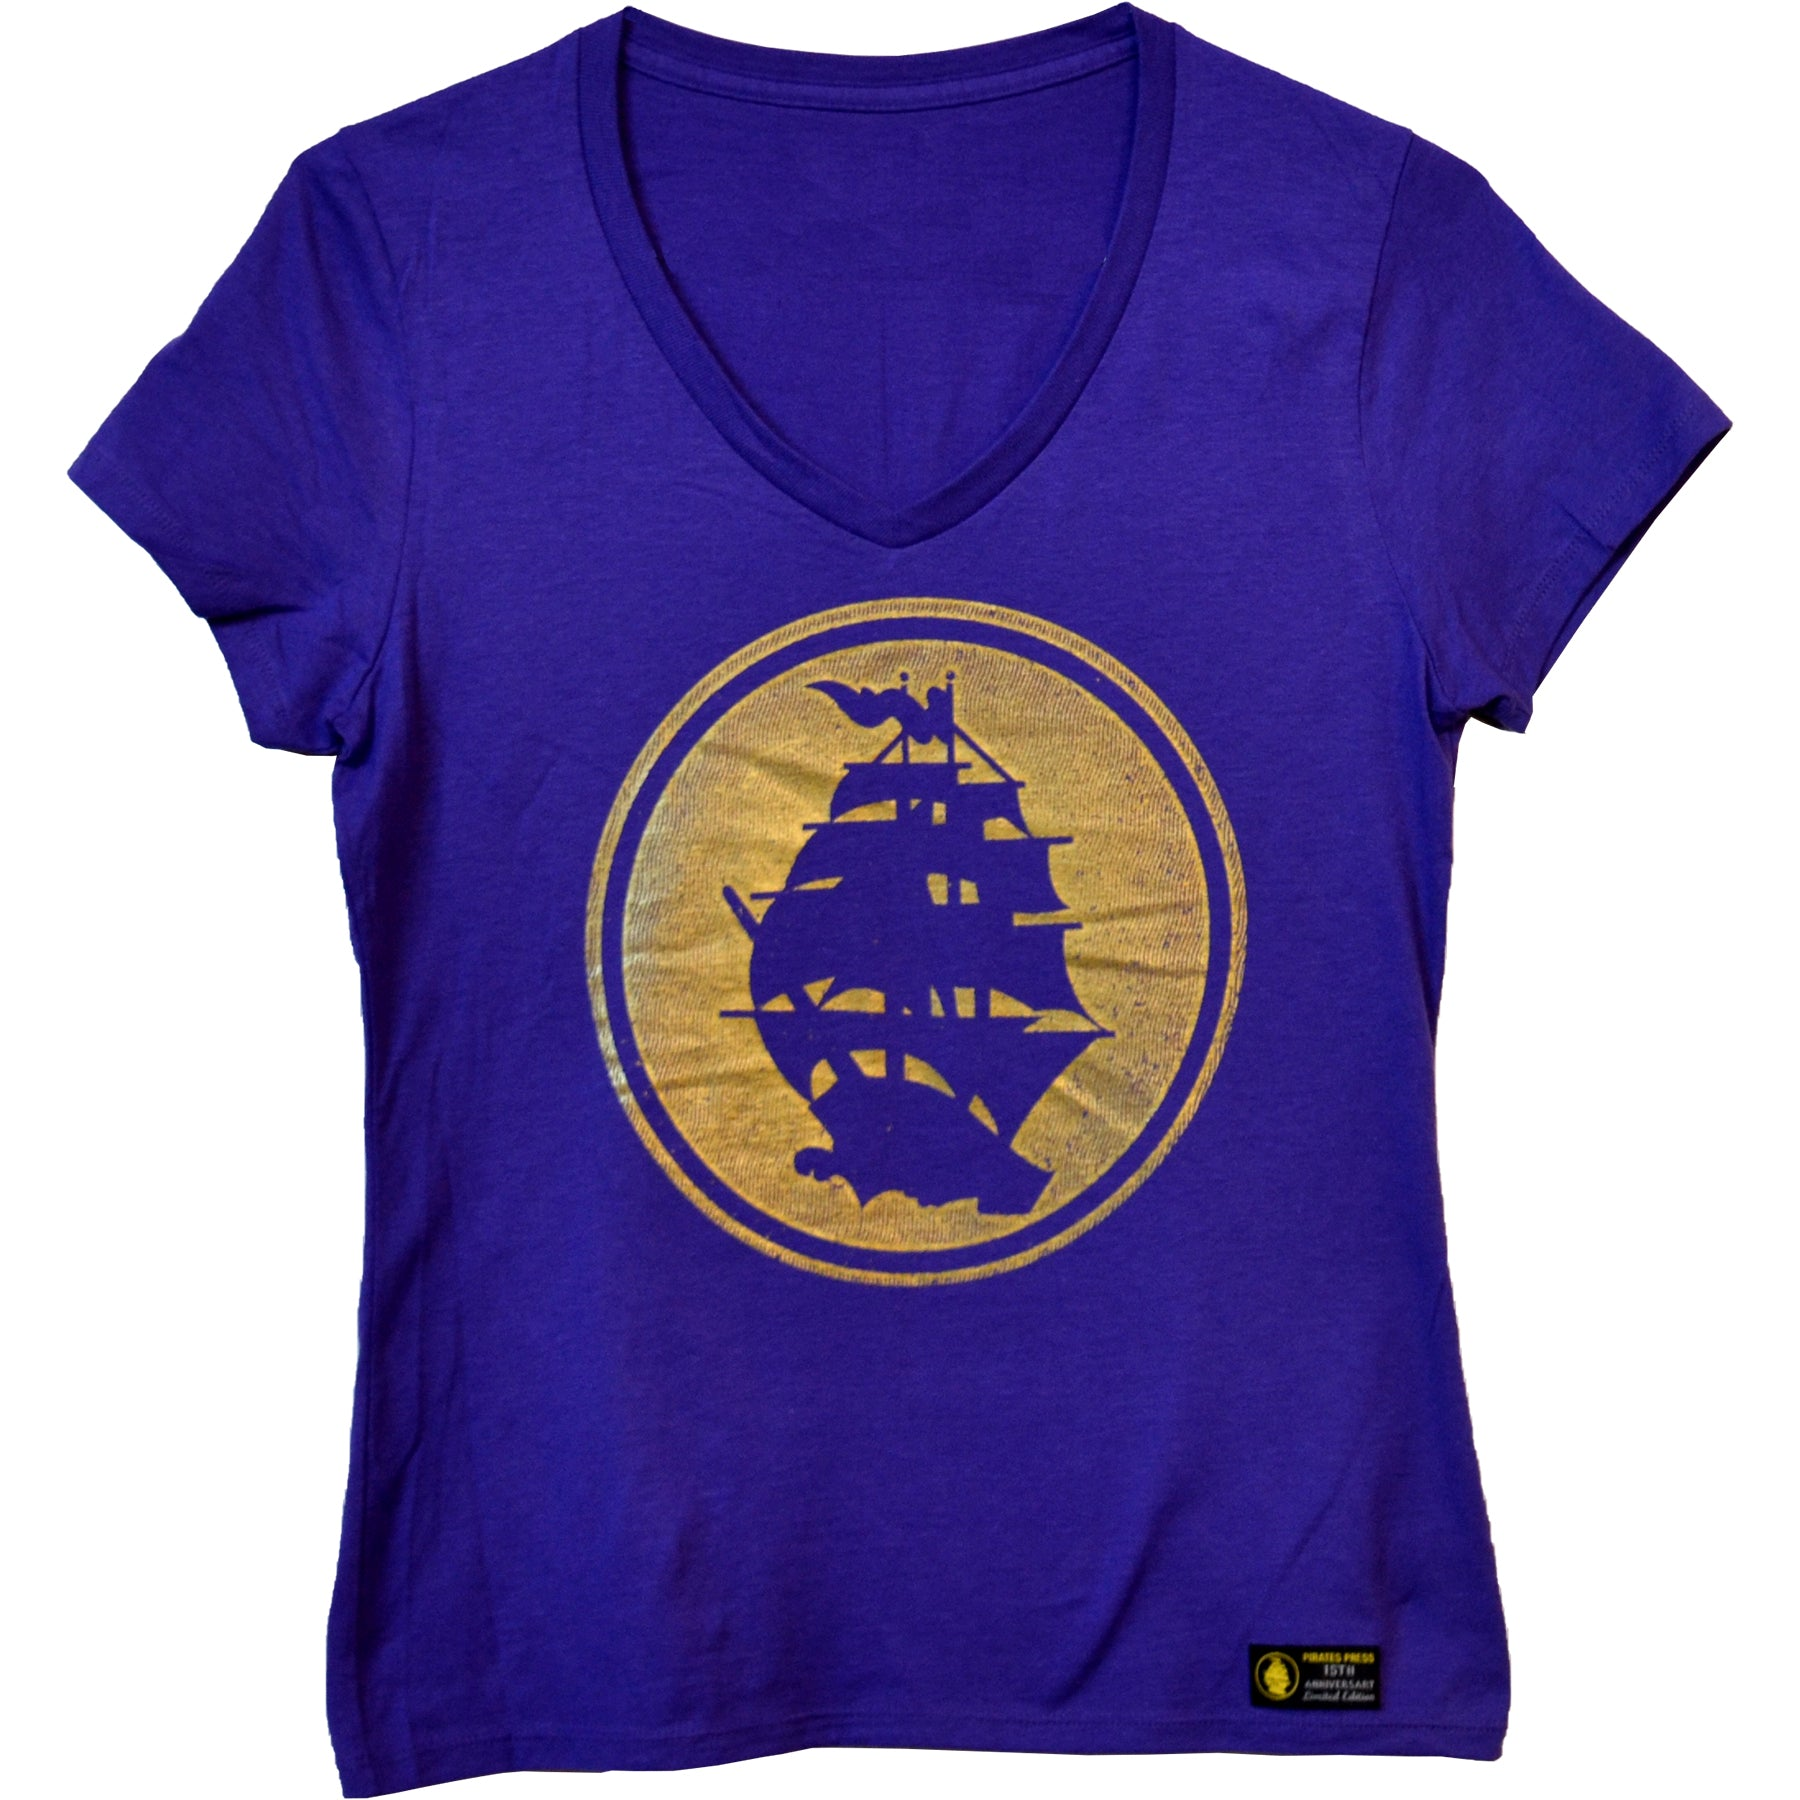 Pirates Press - Circle Logo - Gold on Purple - 15 Year Tag - V-Neck T-Shirt - Fitted